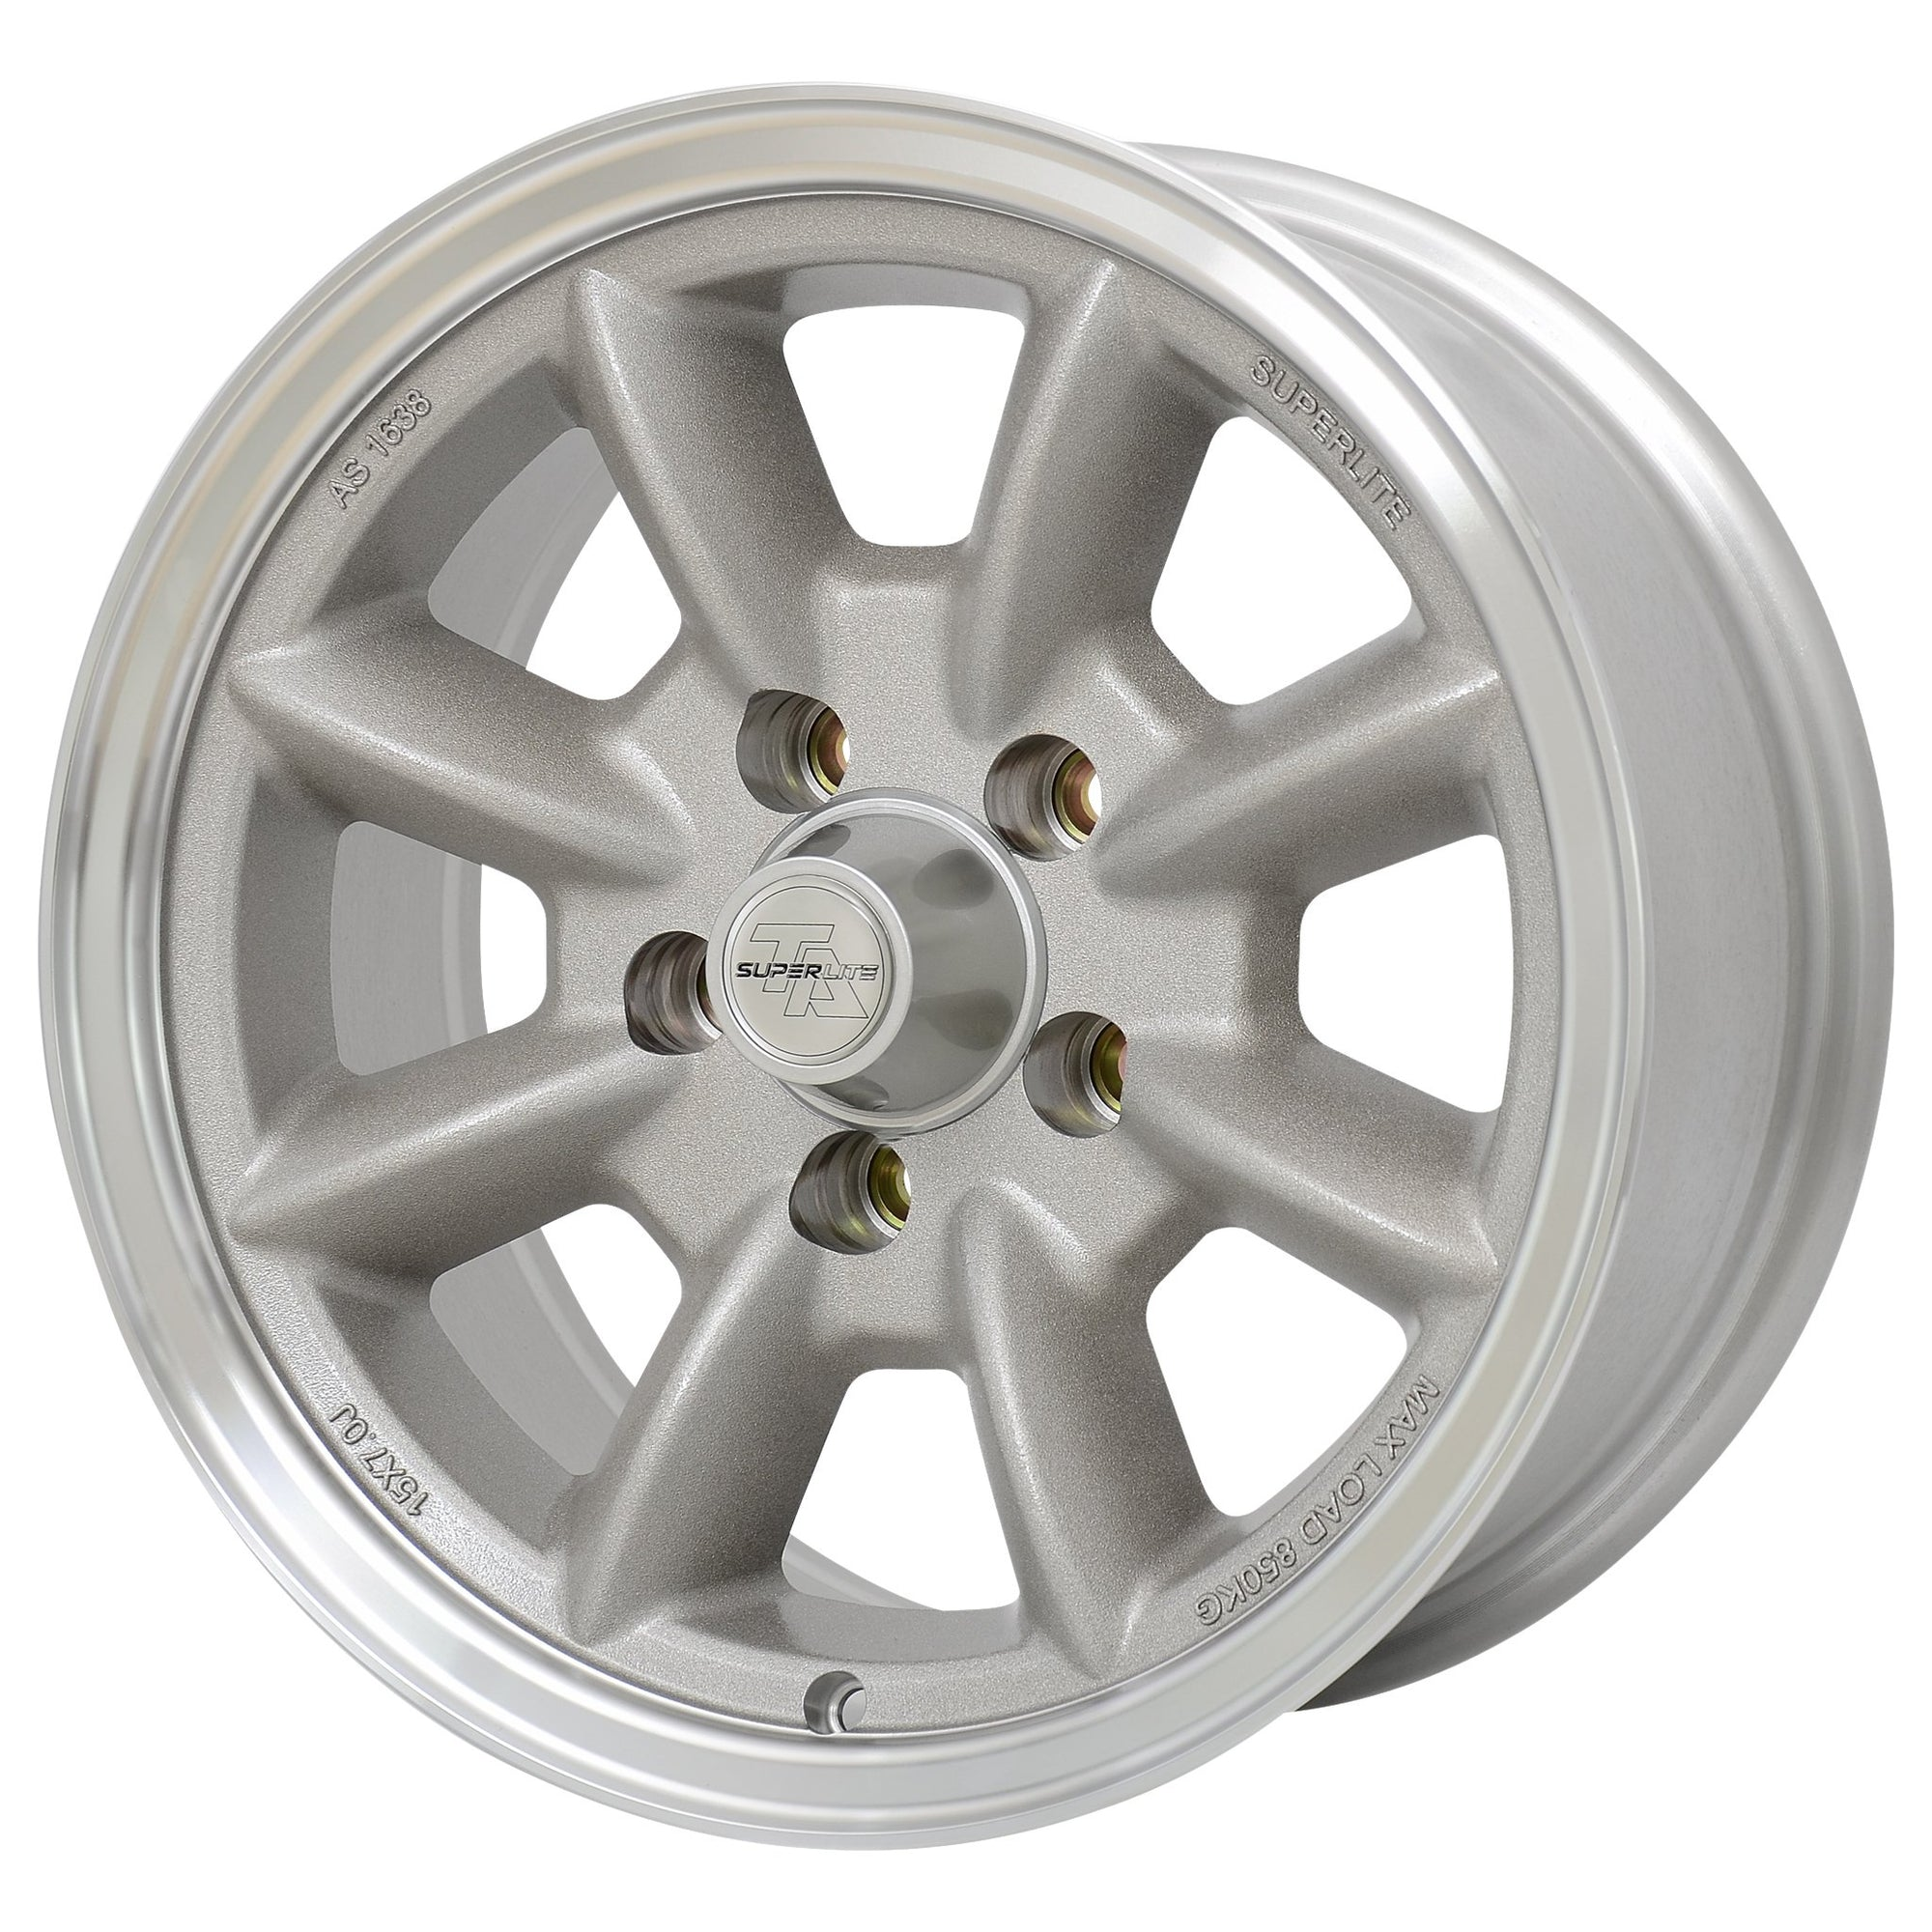 trans am engineering wheels